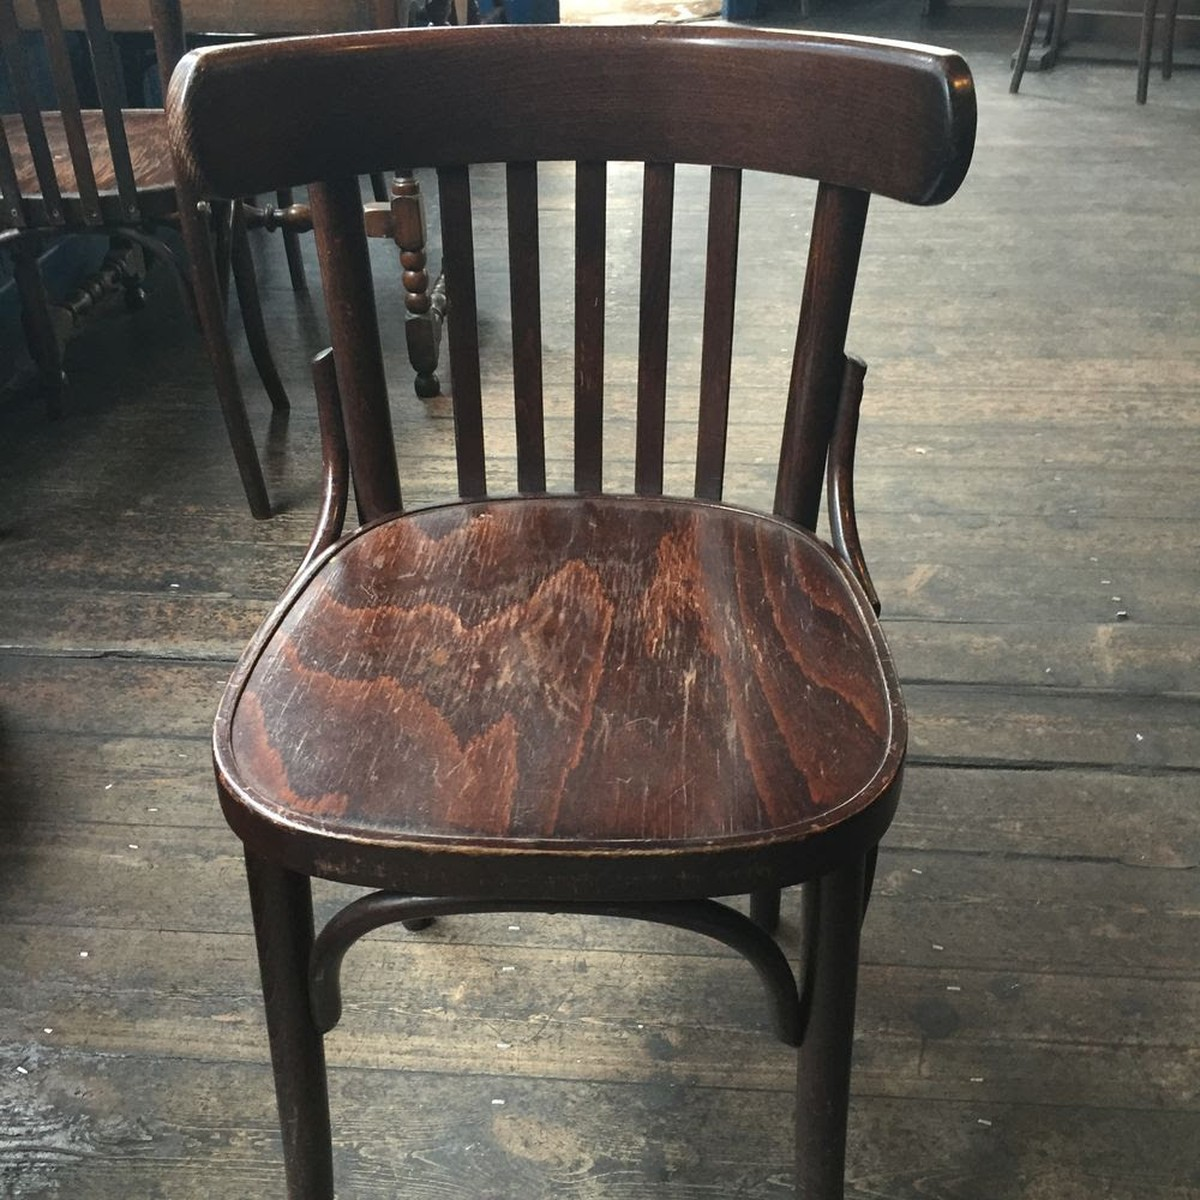 Secondhand Chairs and TablesPub and Bar FurnitureVarious